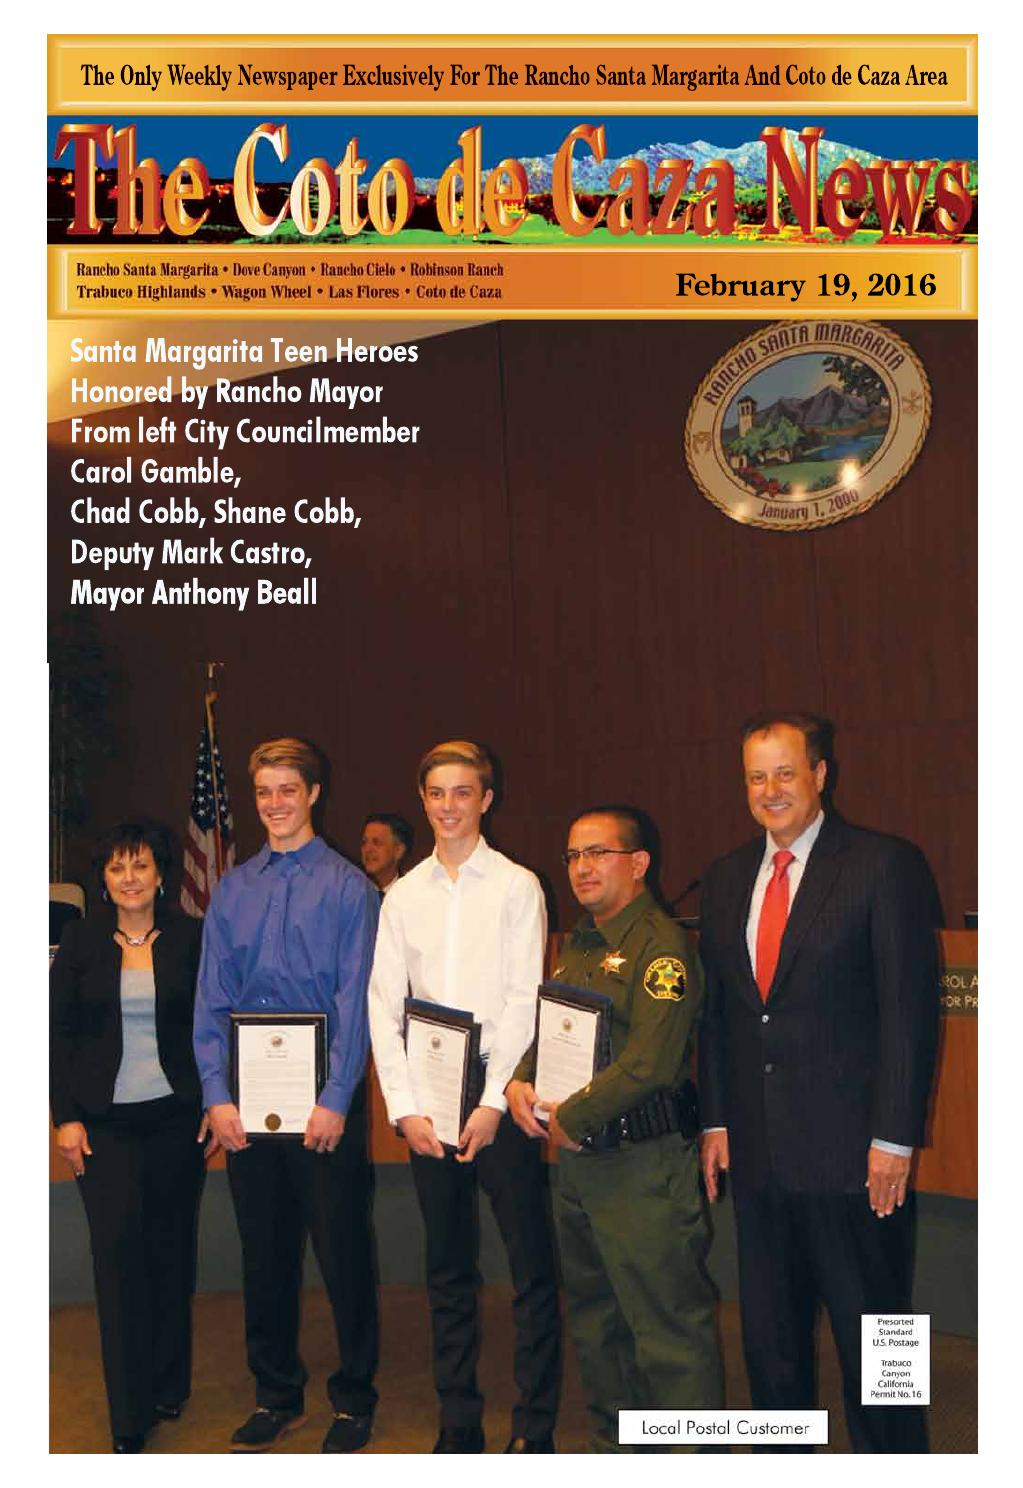 Coto 2 19 16 by Mission Viejo News Group - issuu